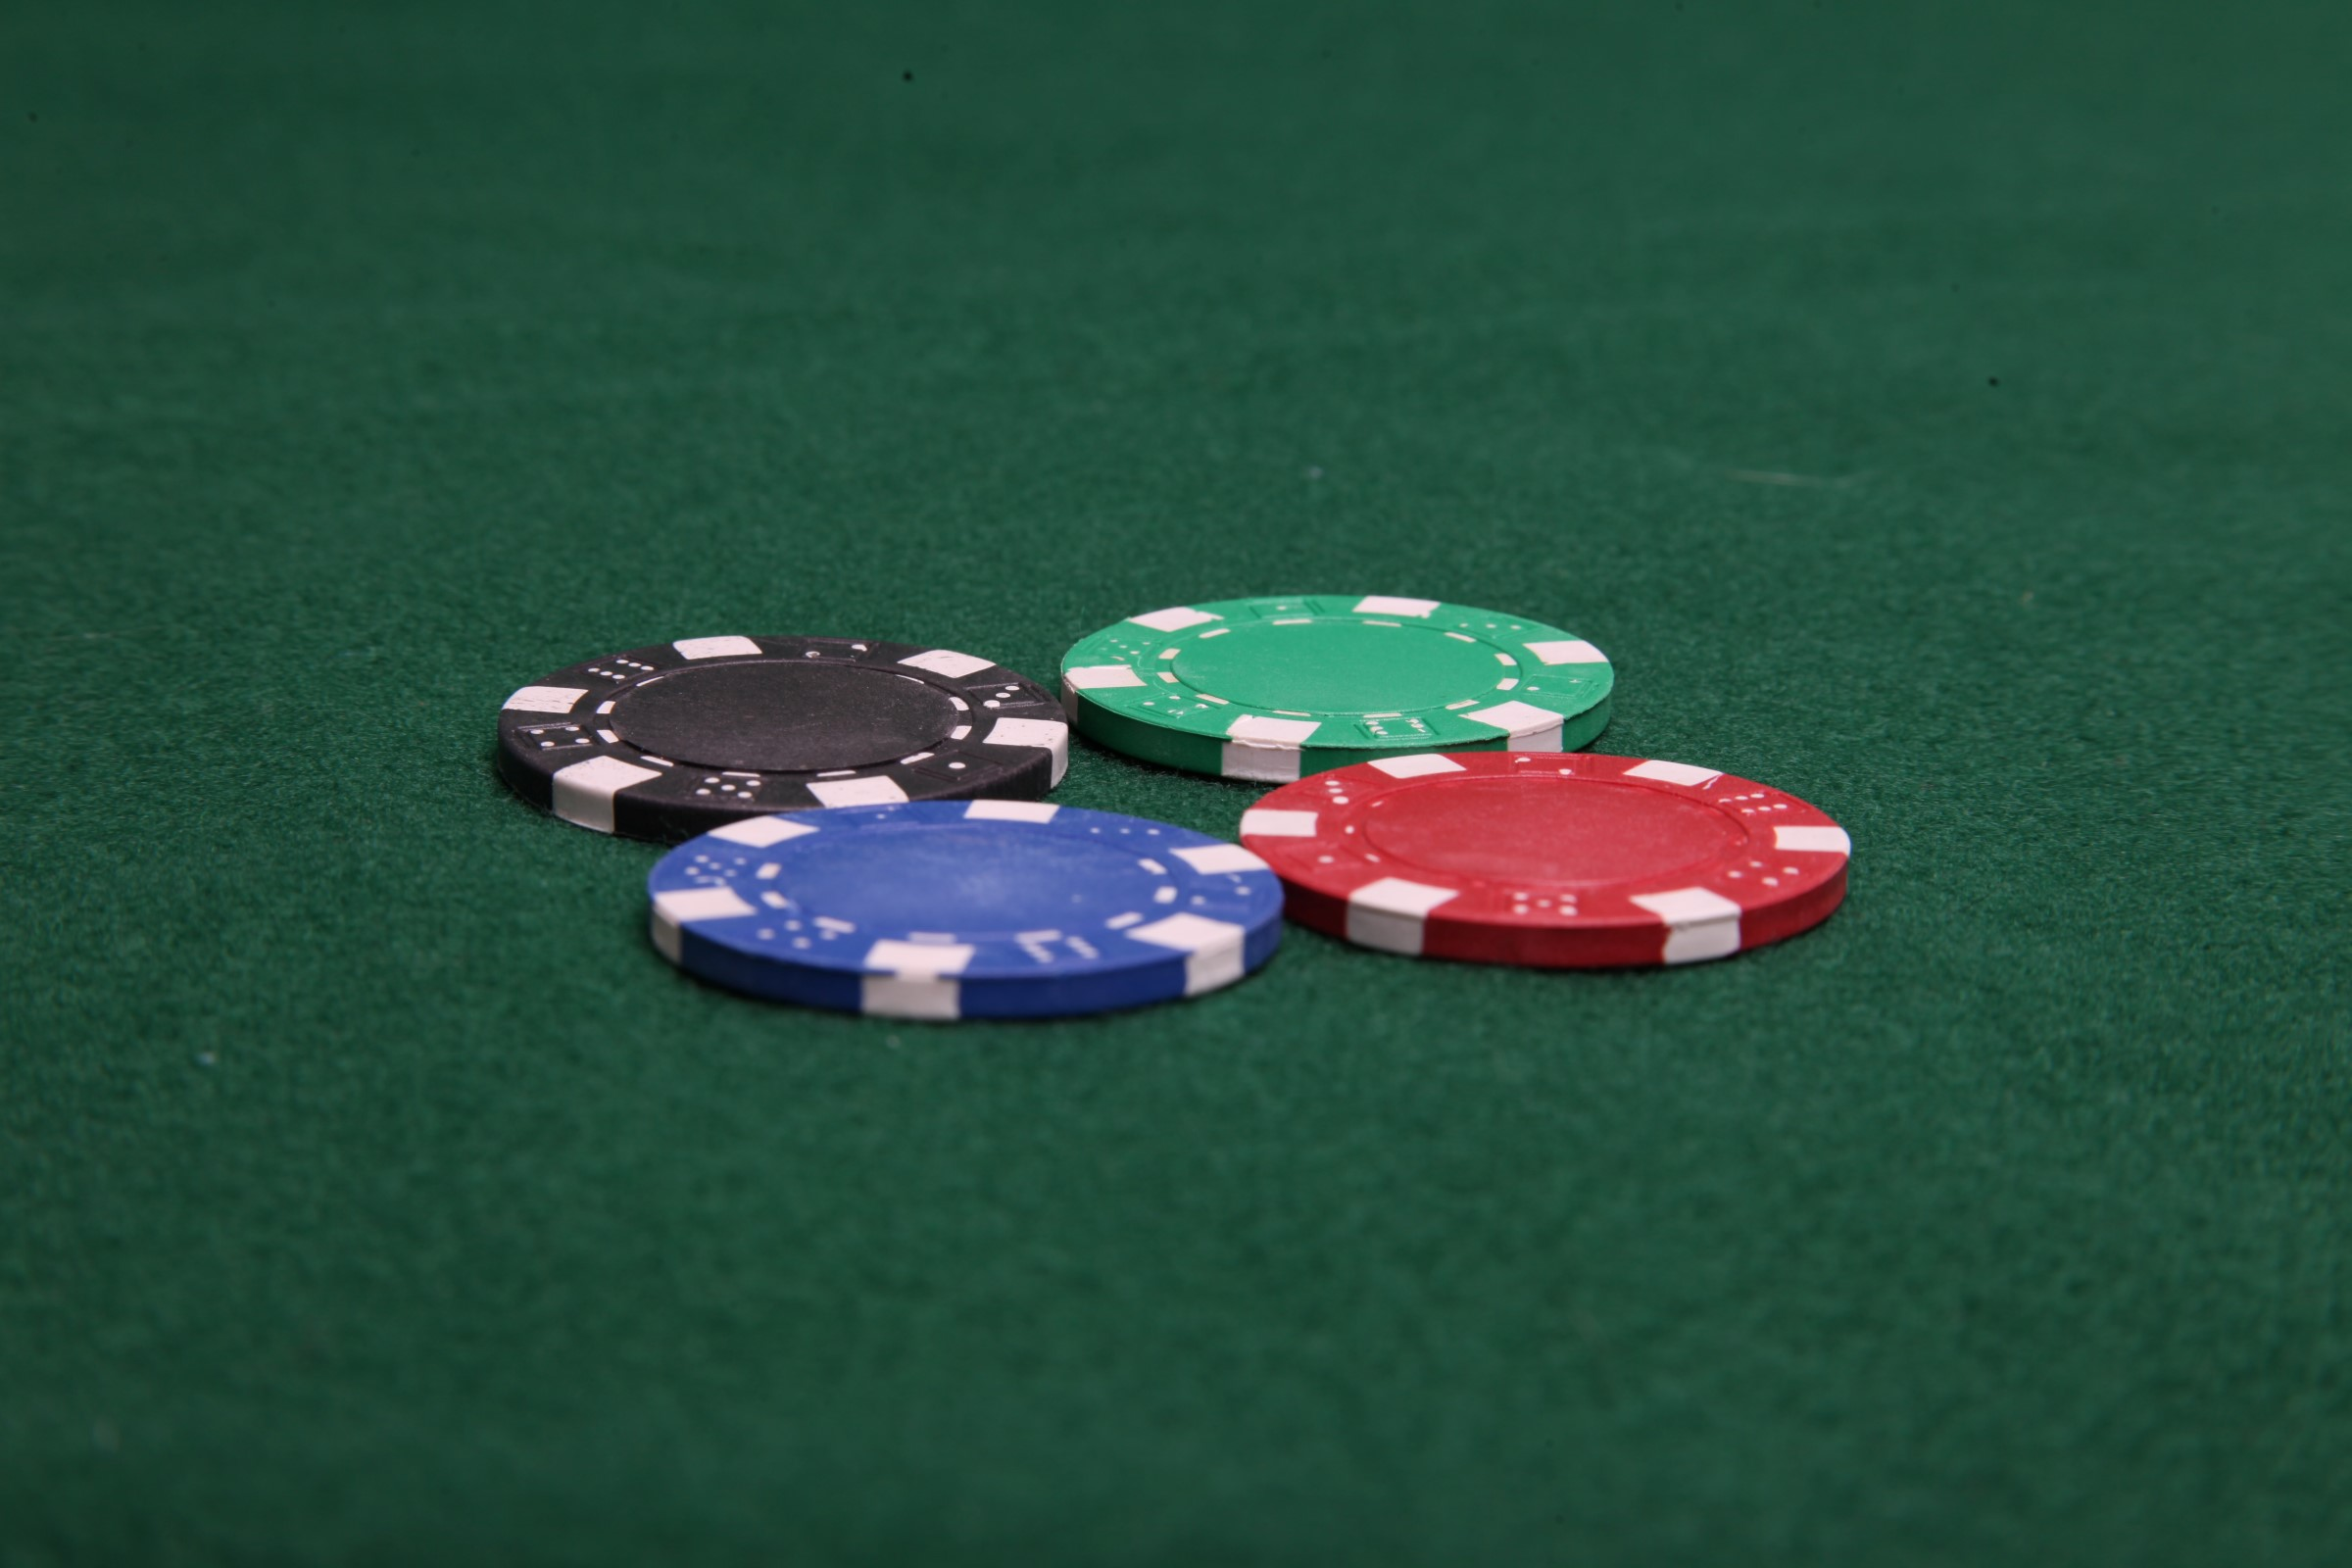 Four poker chips photo